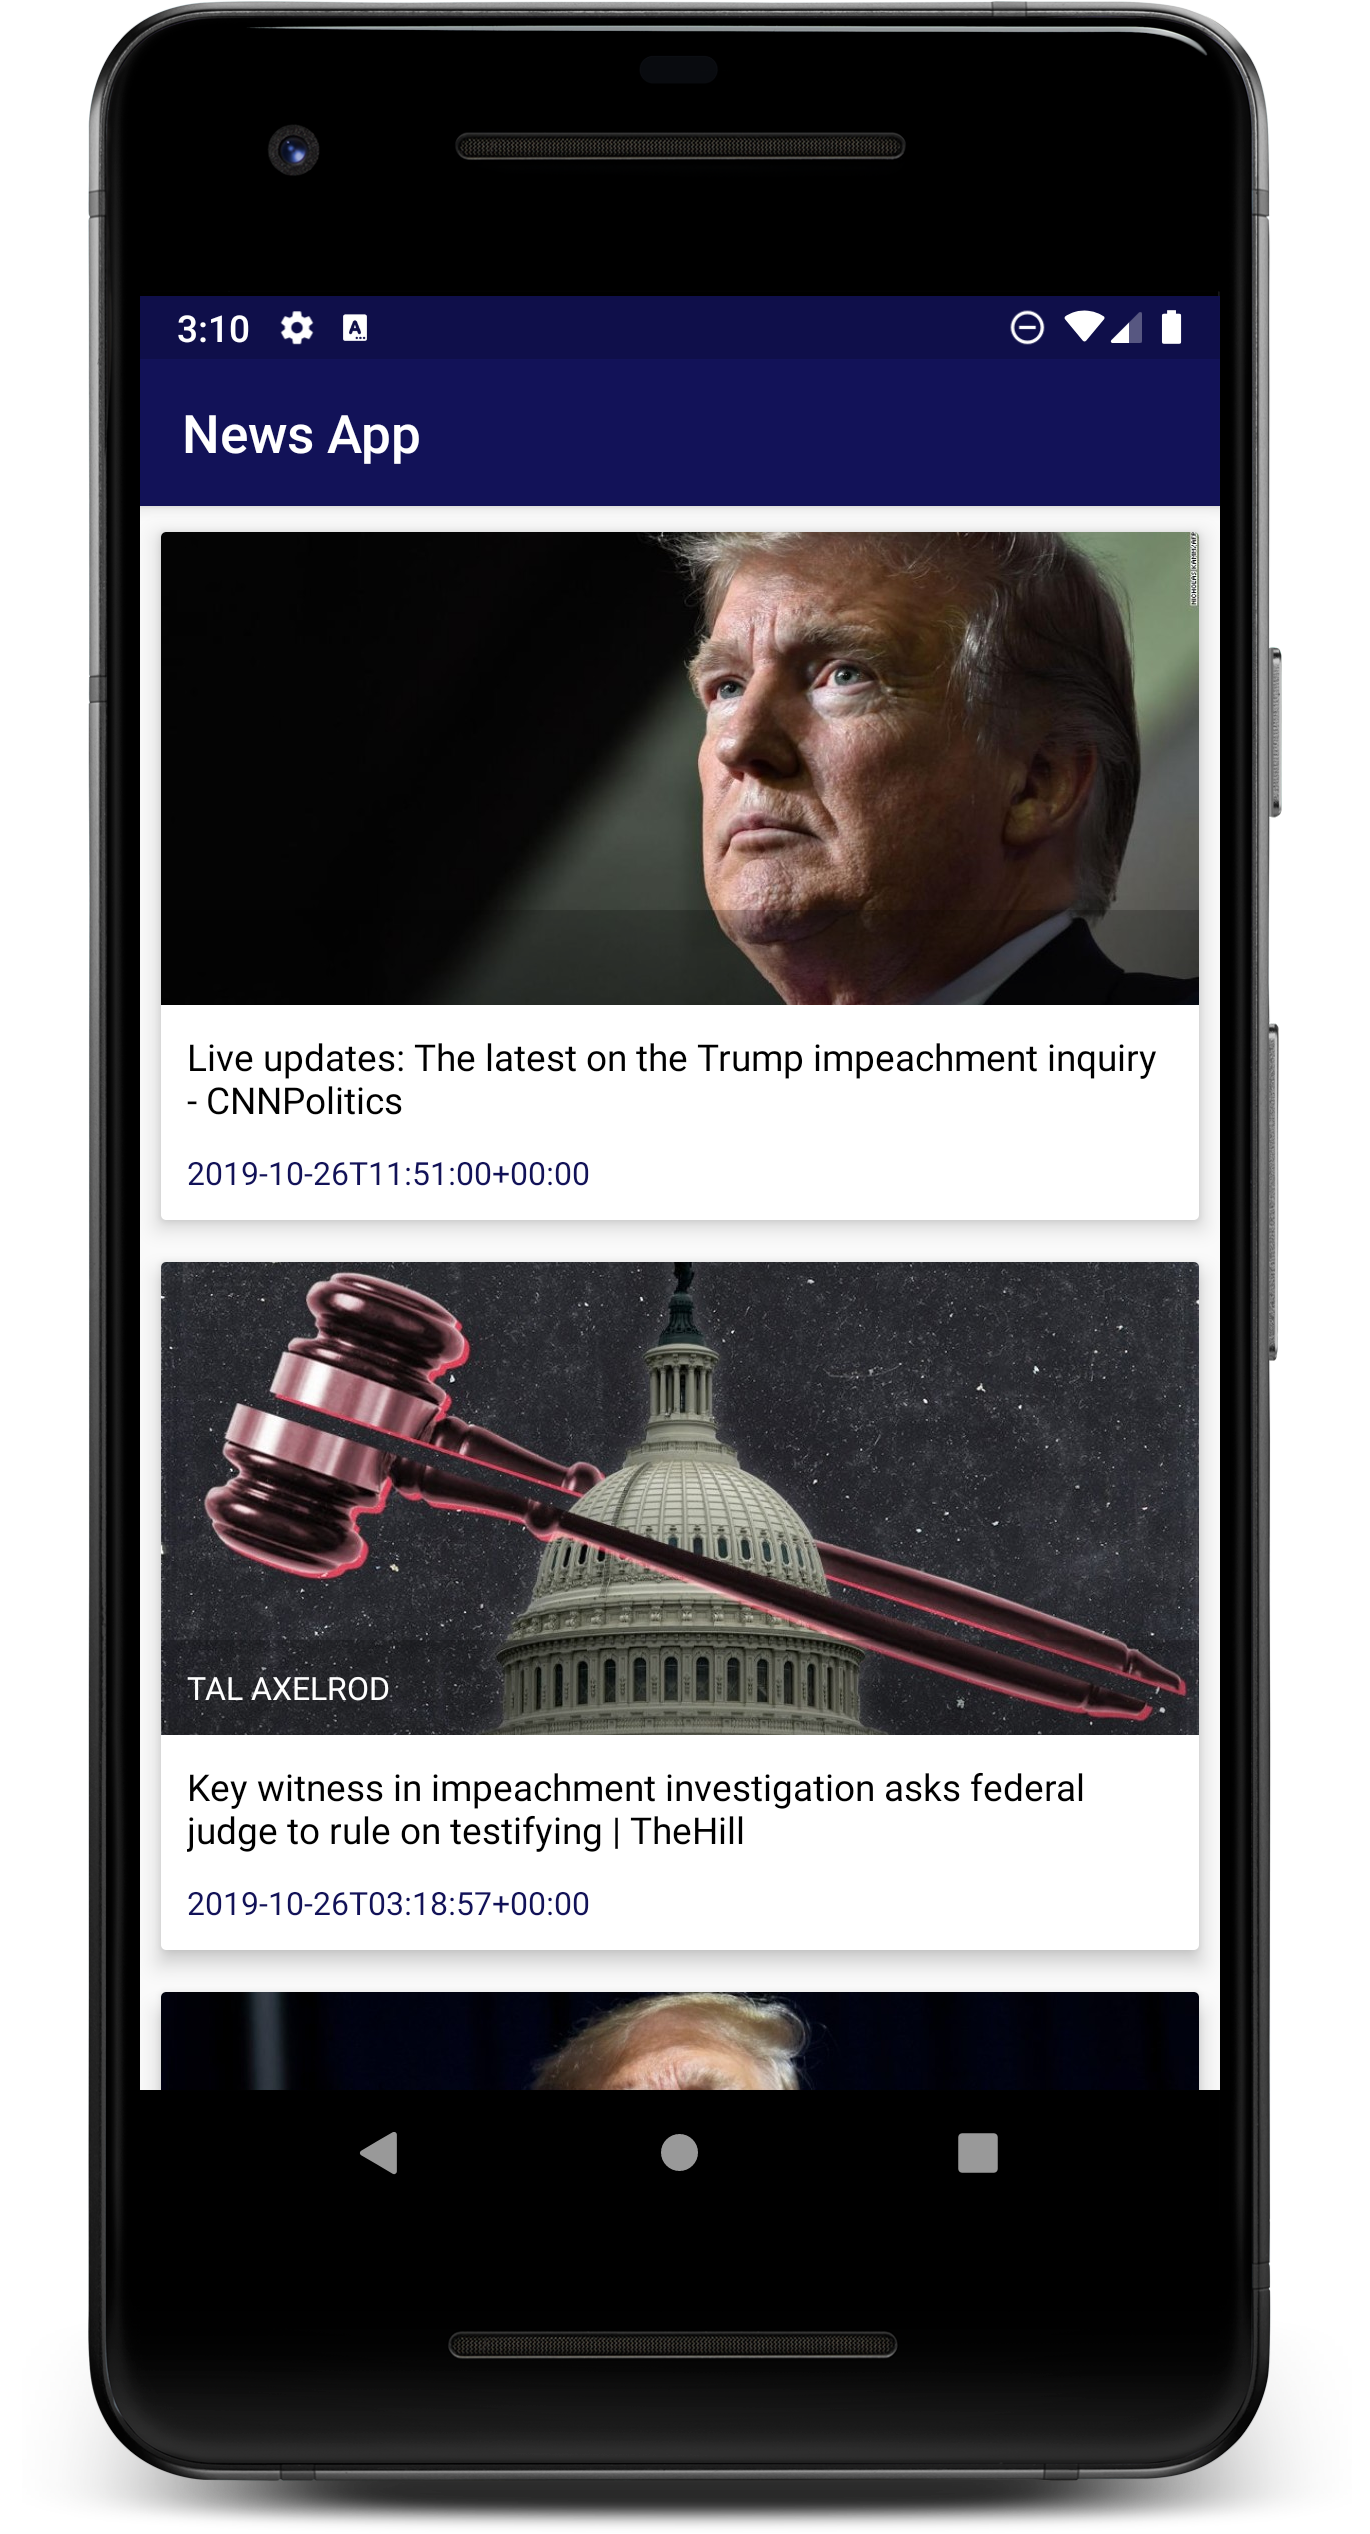 NewsApp Main Page